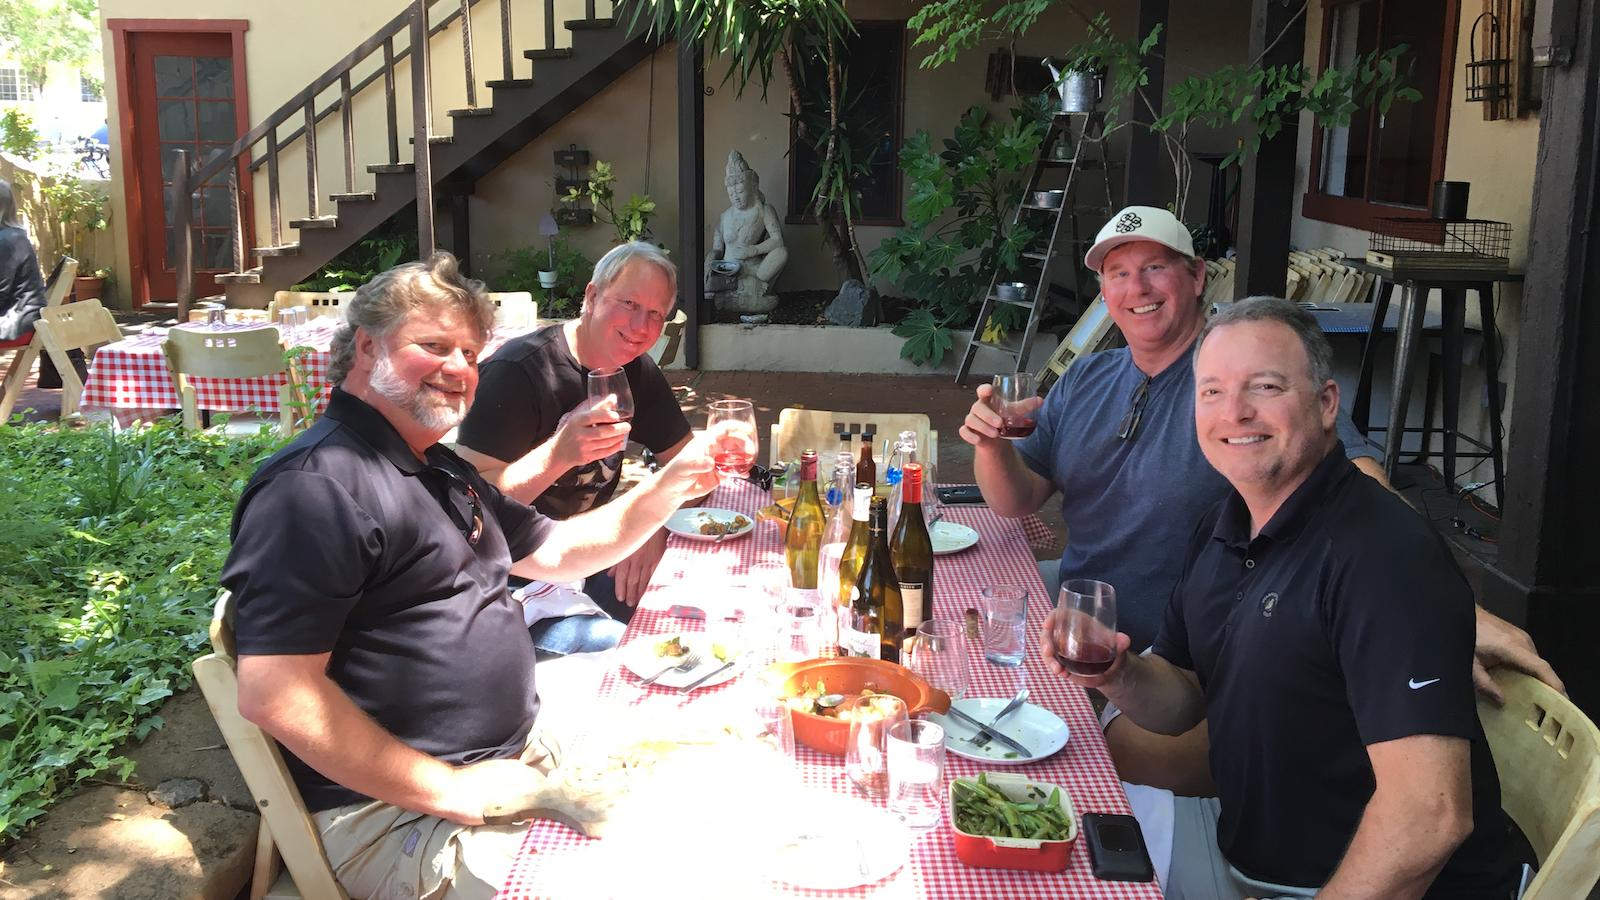 Winemakers Just Wanna Have Fun